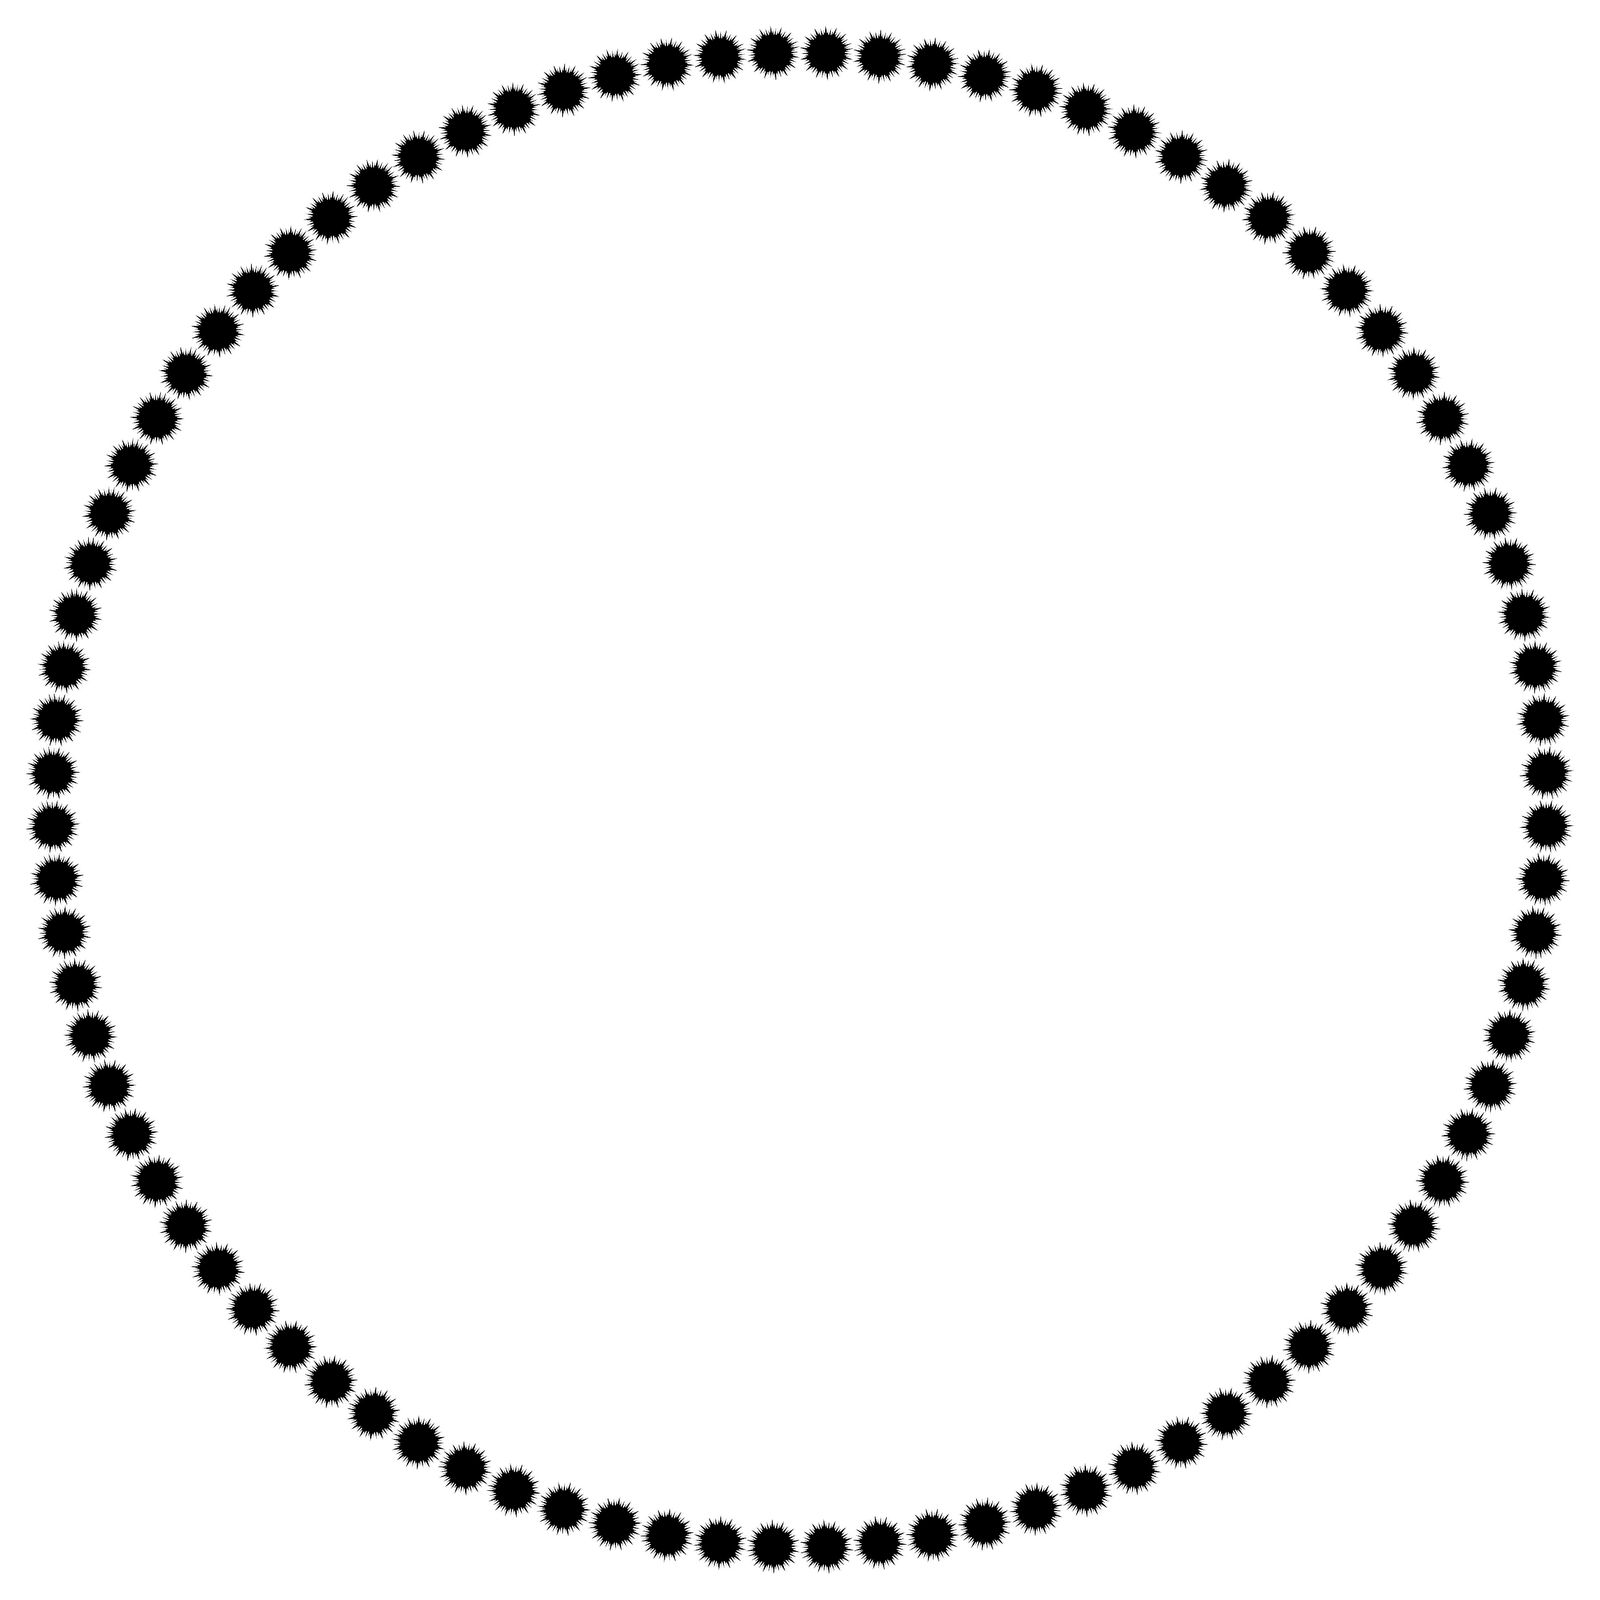 Free Circle Black Cliparts, Download Free Clip Art, Free.